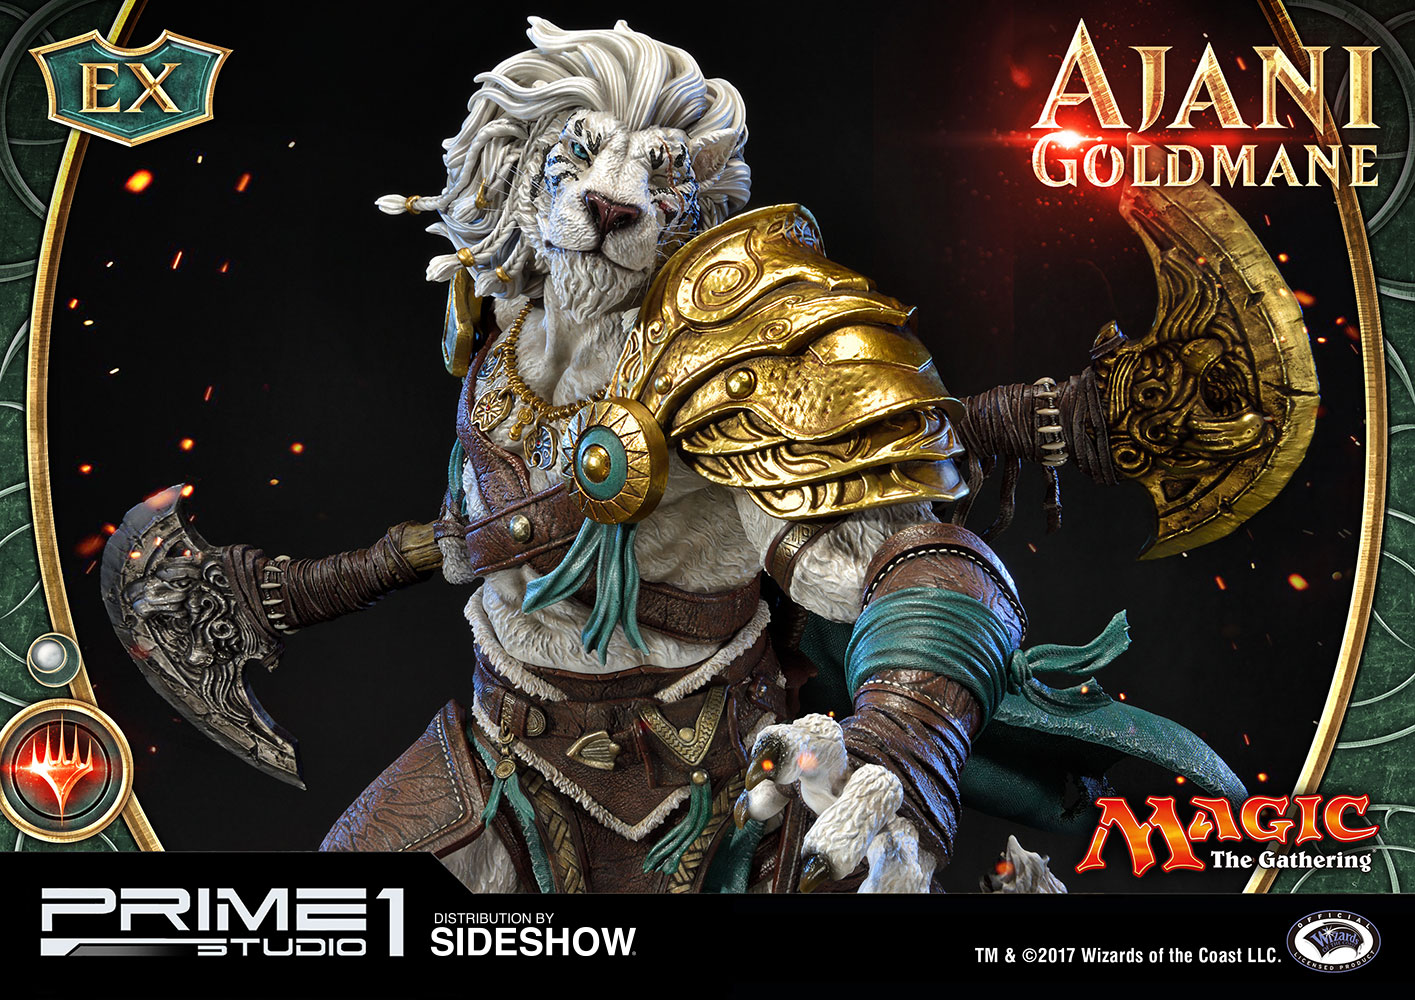 Mtg Online Shop Magic The Gathering Ajani Goldmane Statue By Prime 1 Studio